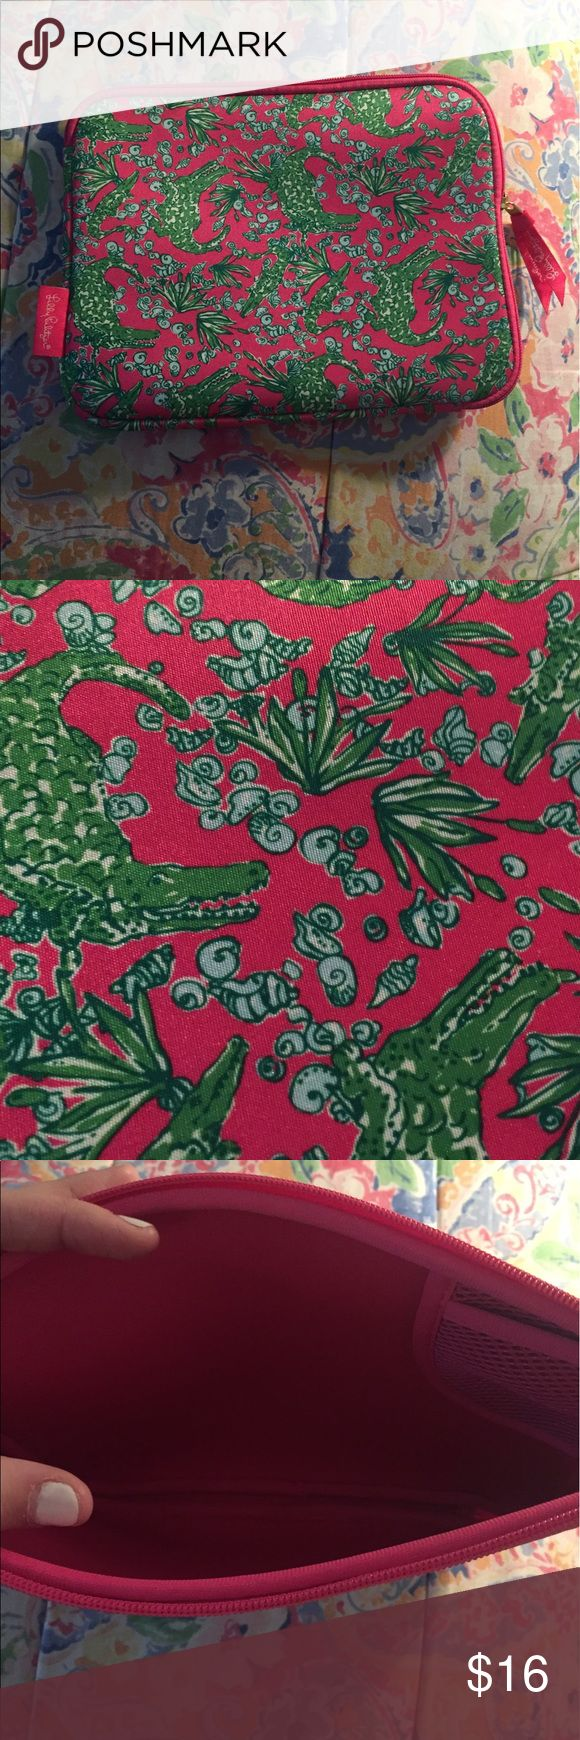 """Lilly Pulitzer IPad Sleeve Brand new, never used. This is in the pattern, See you Later. Fits iPad 2 and 3 I believe. Durable Neoprene Material, 10.2x8"""" Open to possibly negotiate price! Lilly Pulitzer Accessories Laptop Cases"""